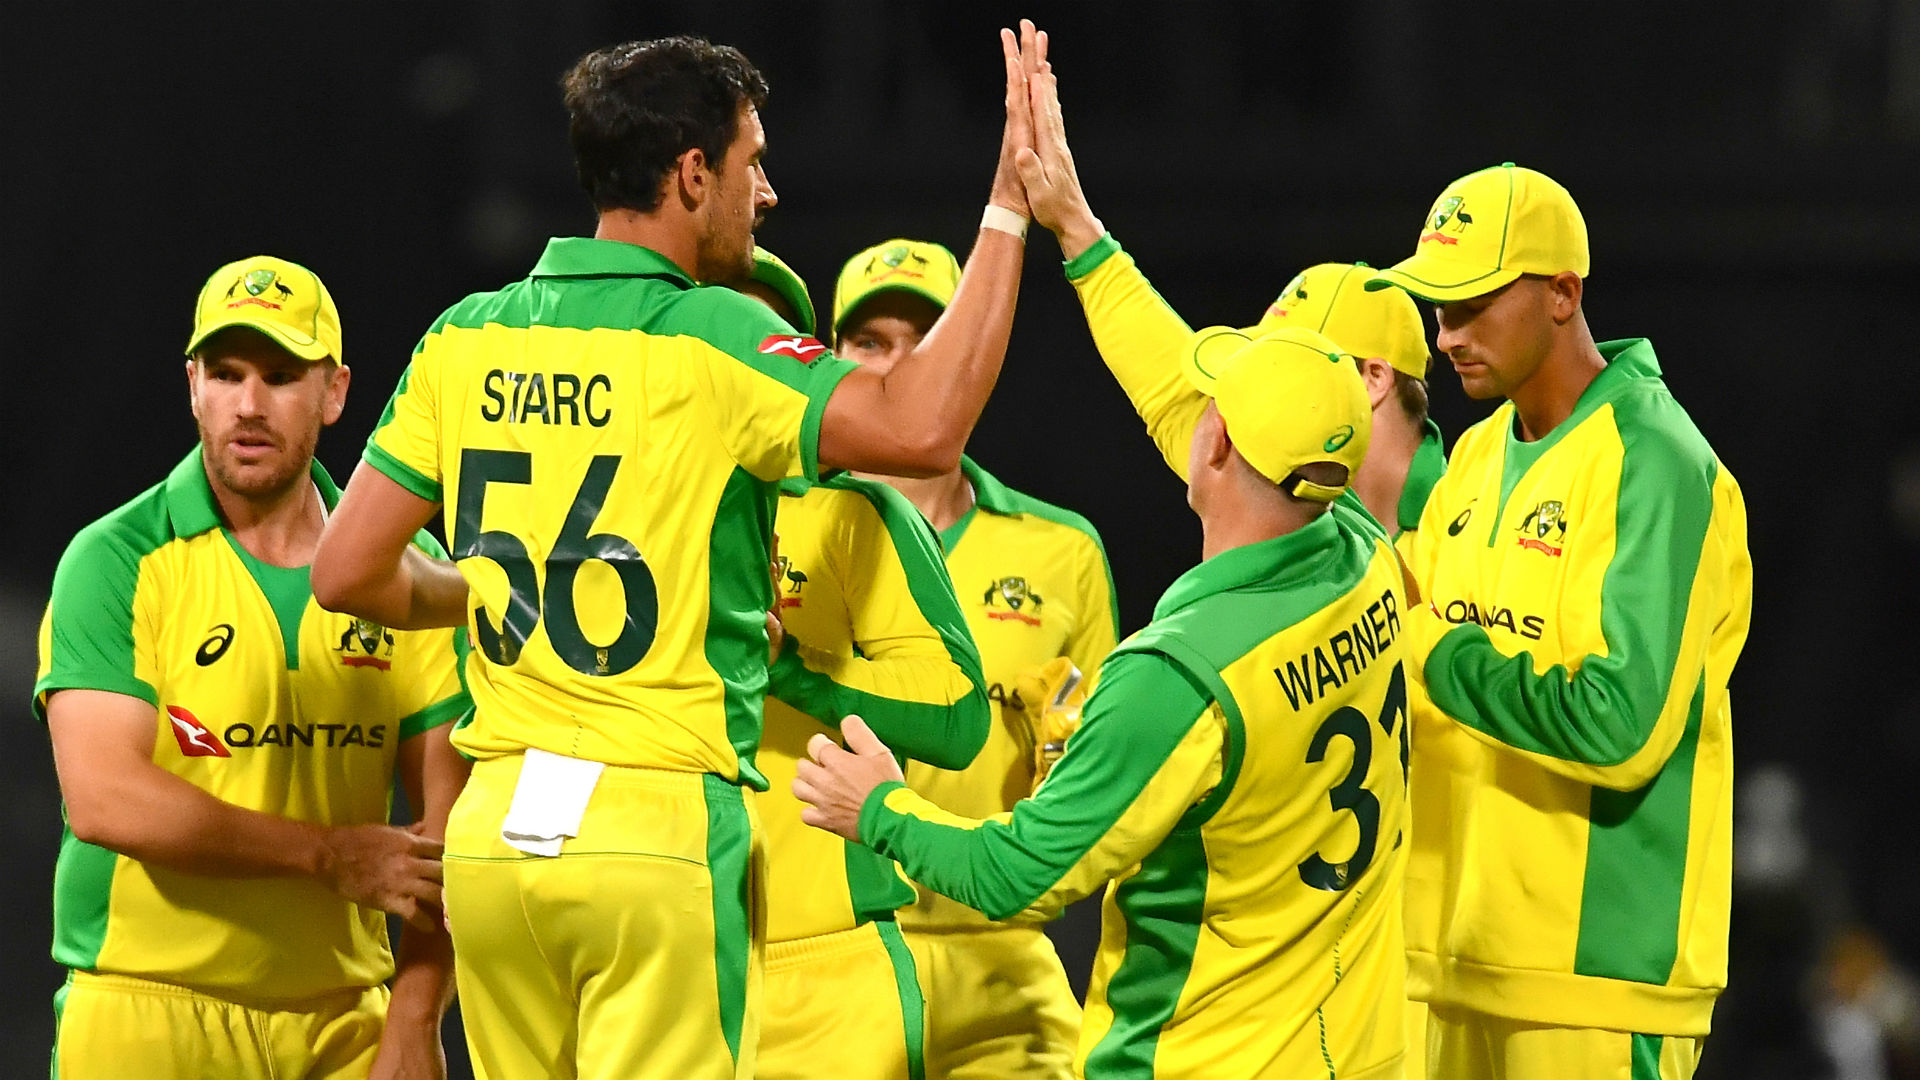 South Africa managed just 96 in reply to Australia's total of 193-5 as the tourists dominated the series decider in Cape Town.